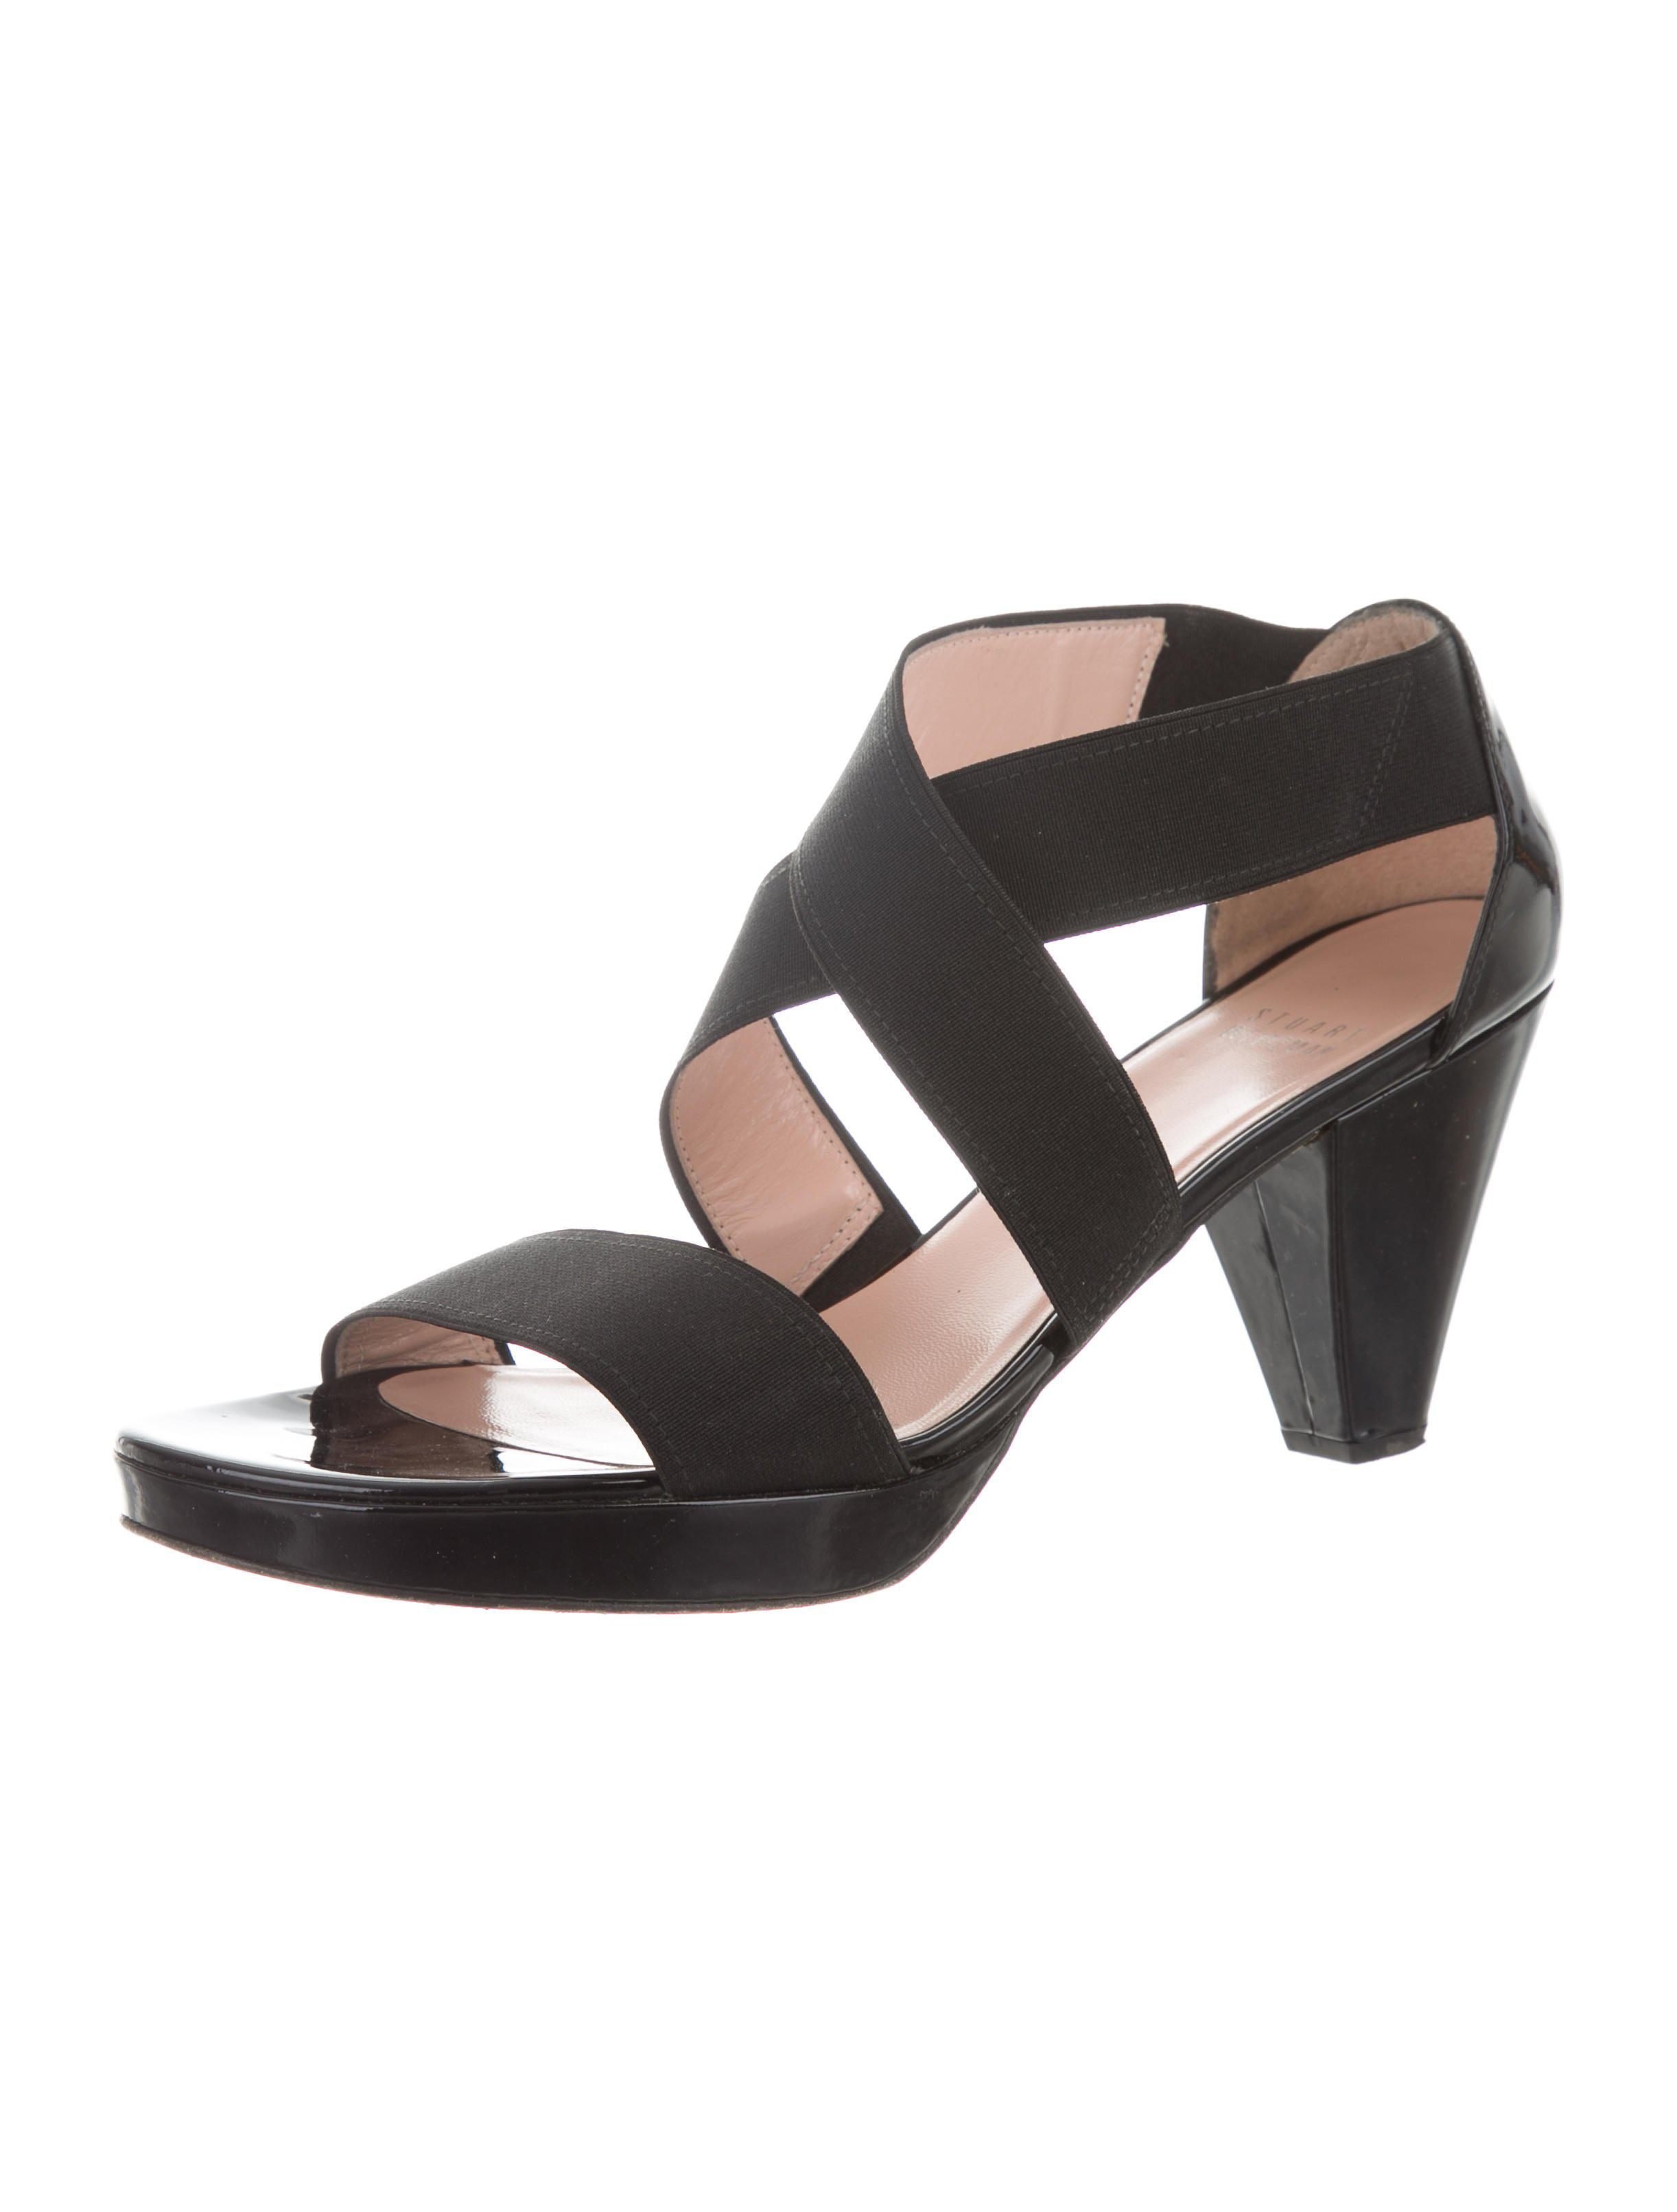 Stuart Weitzman woven Crossover Sandals cheap 2014 new free shipping outlet locations YUyInr